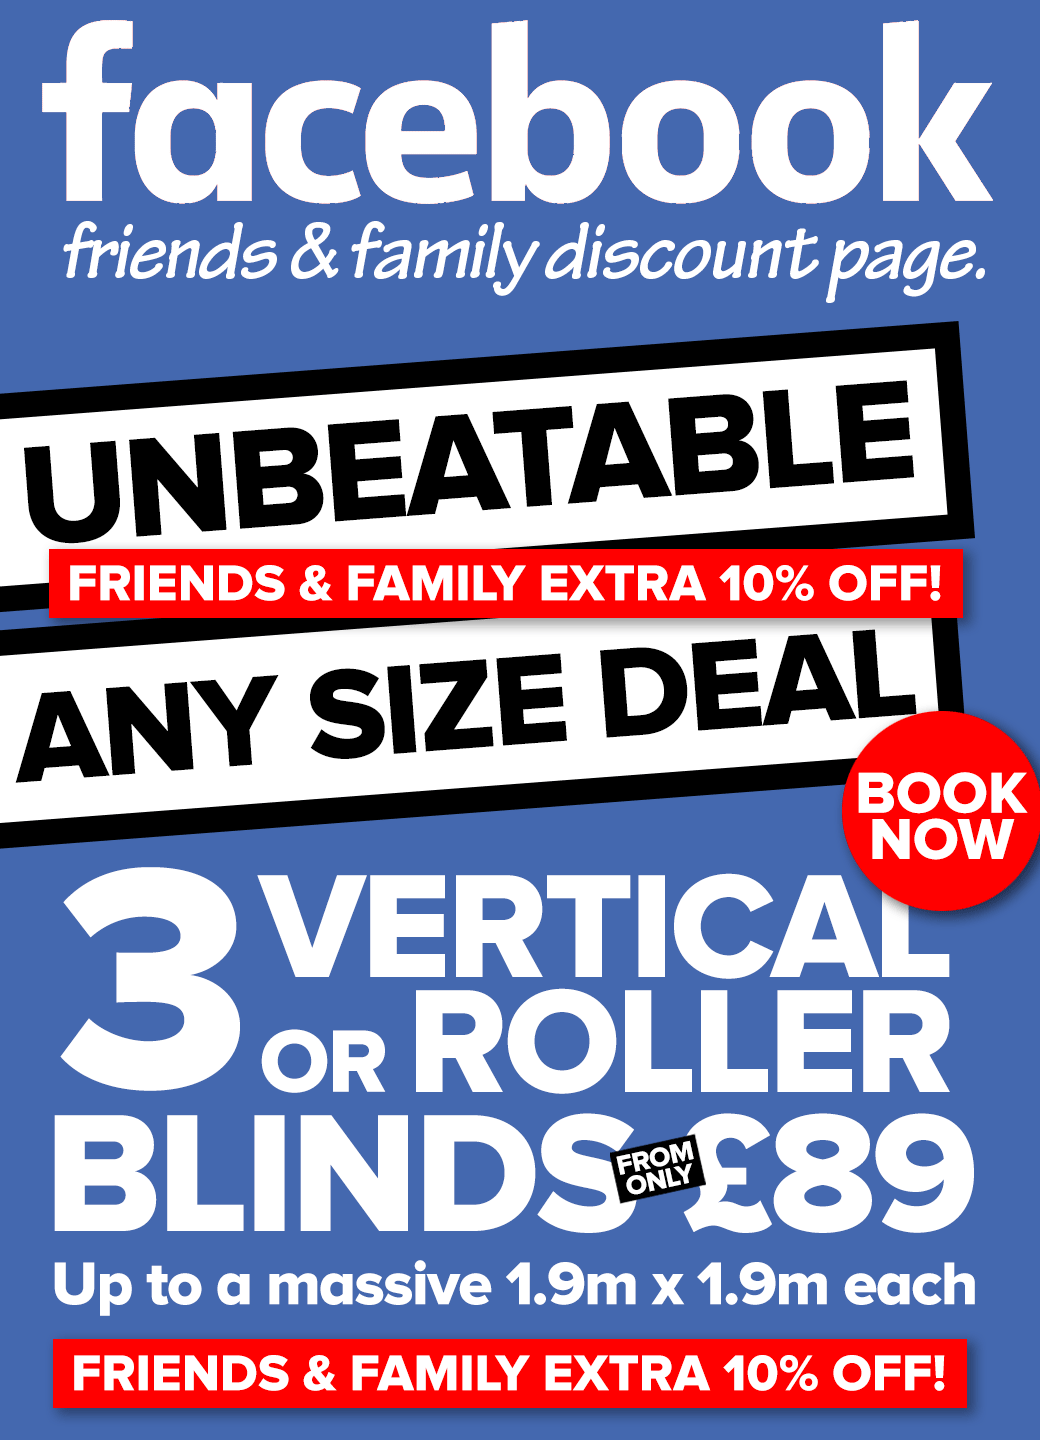 Any Size Deal on Blinds from Shades